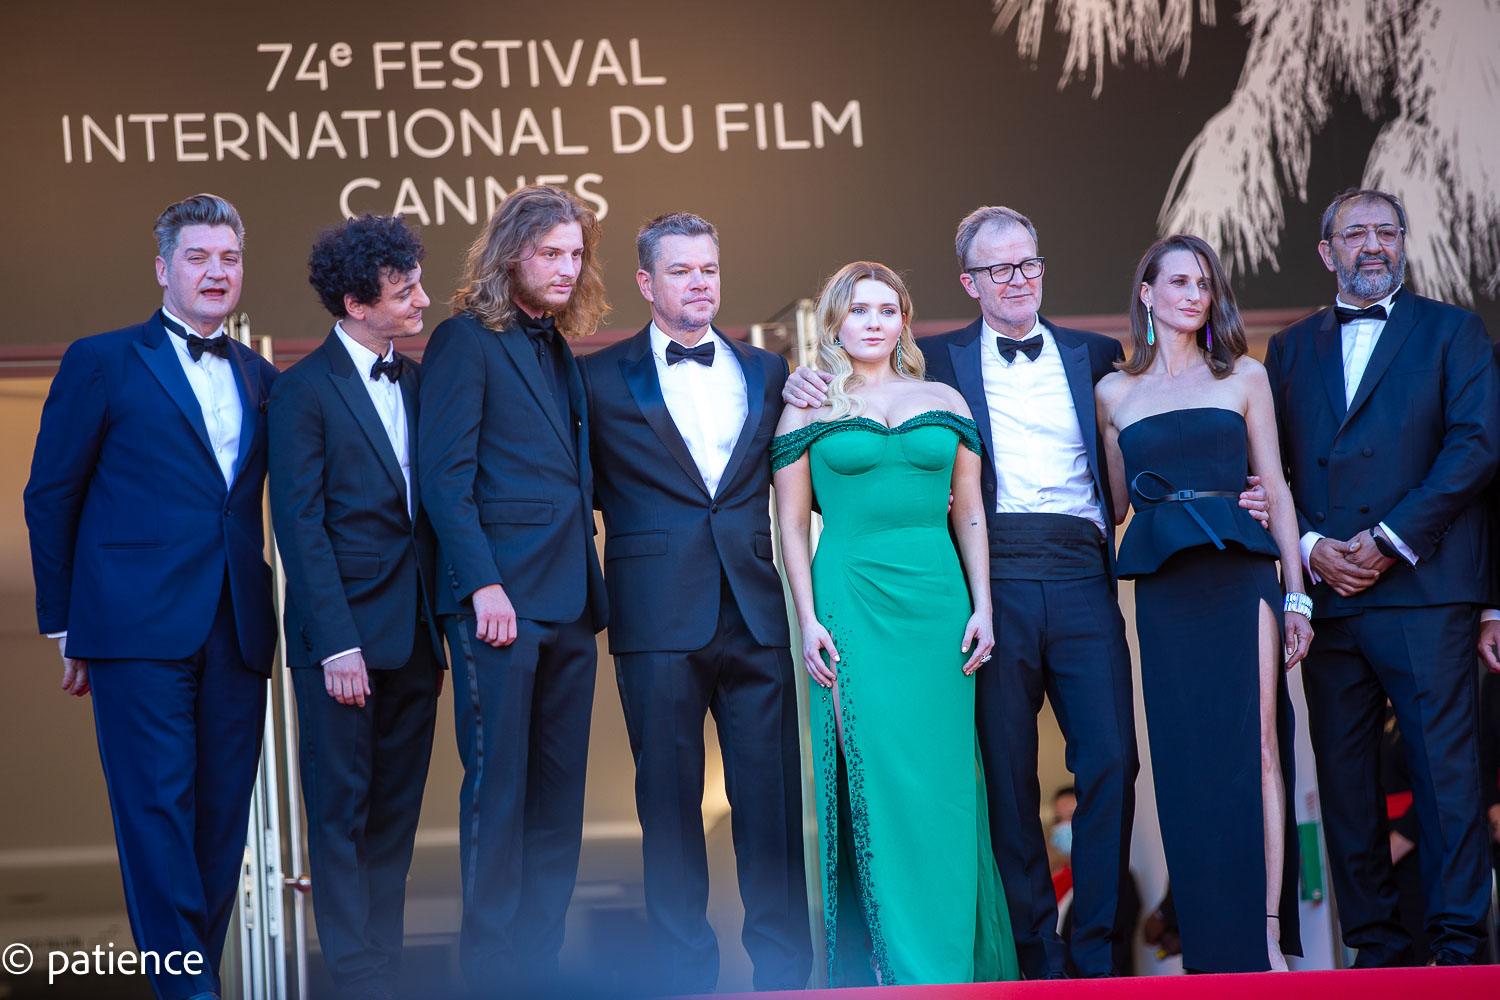 """The """"Stillwater"""" cast pose for the Cannes red carpet cameras before heading inside for the premiere. Photo: Patience Eding/Another Concept for Florida National News."""